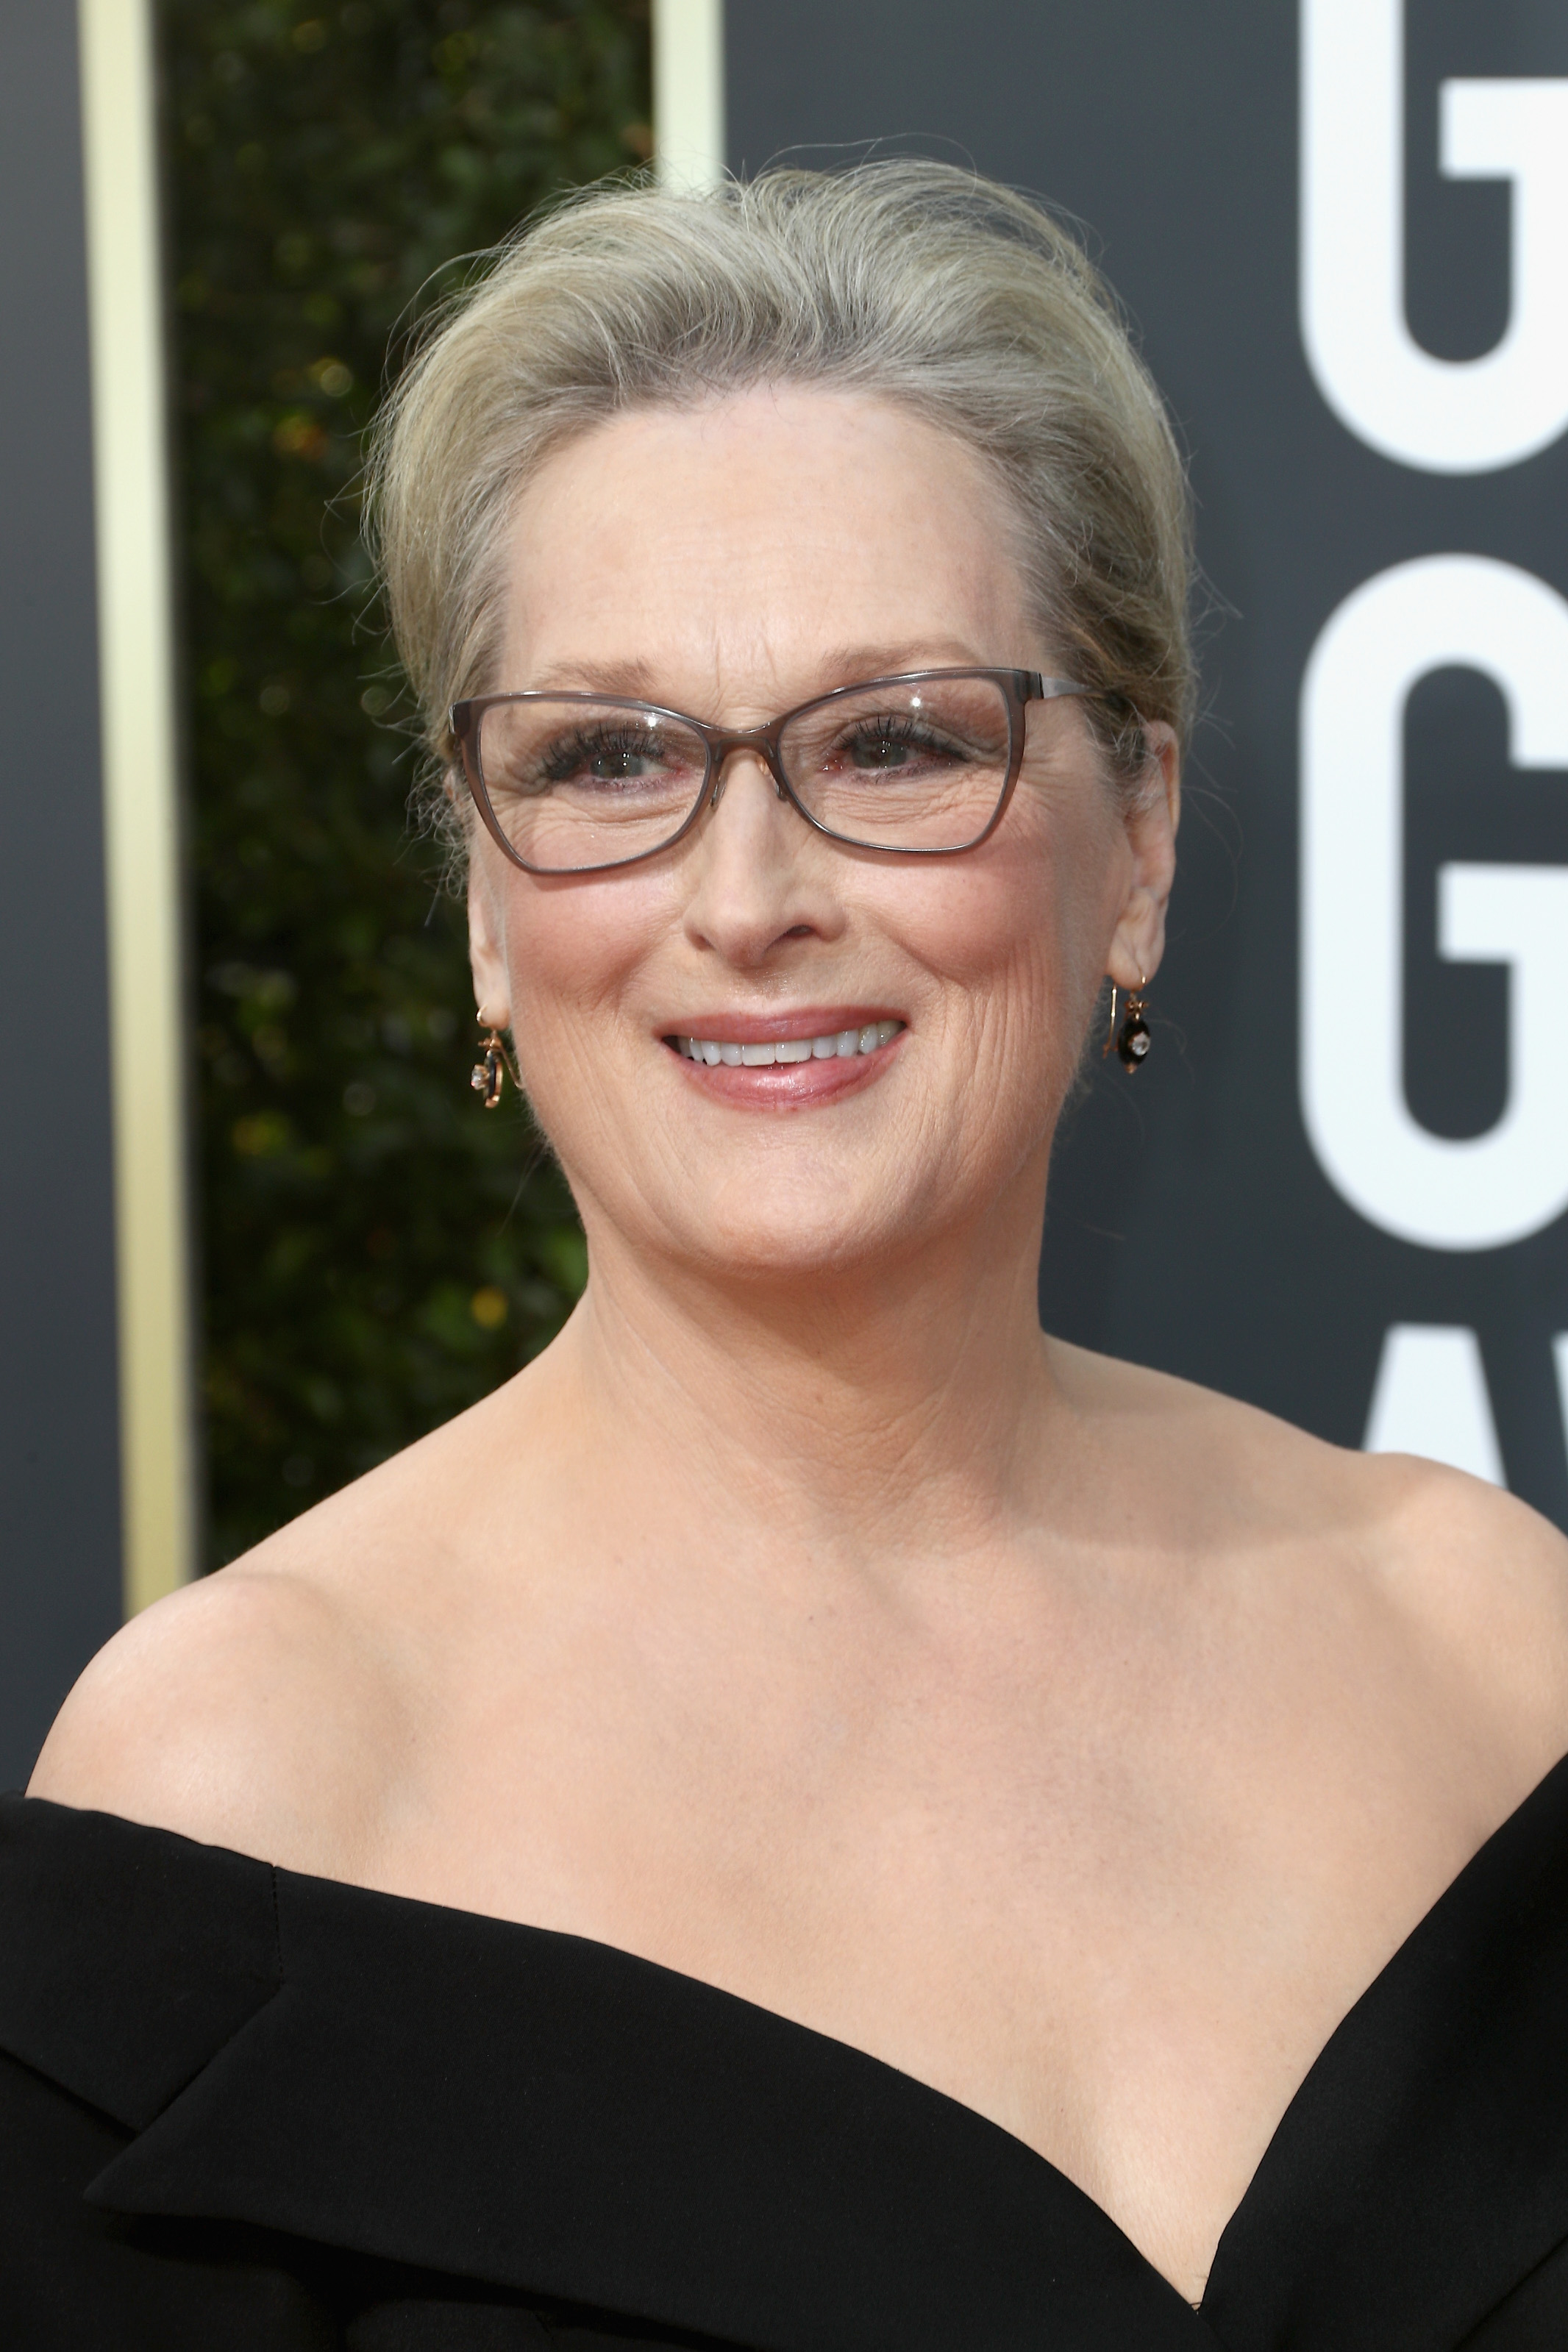 Actor Meryl Streep attends The 75th Annual Golden Globe Awards at The Beverly Hilton Hotel on January 7, 2018 in Beverly Hills, California.